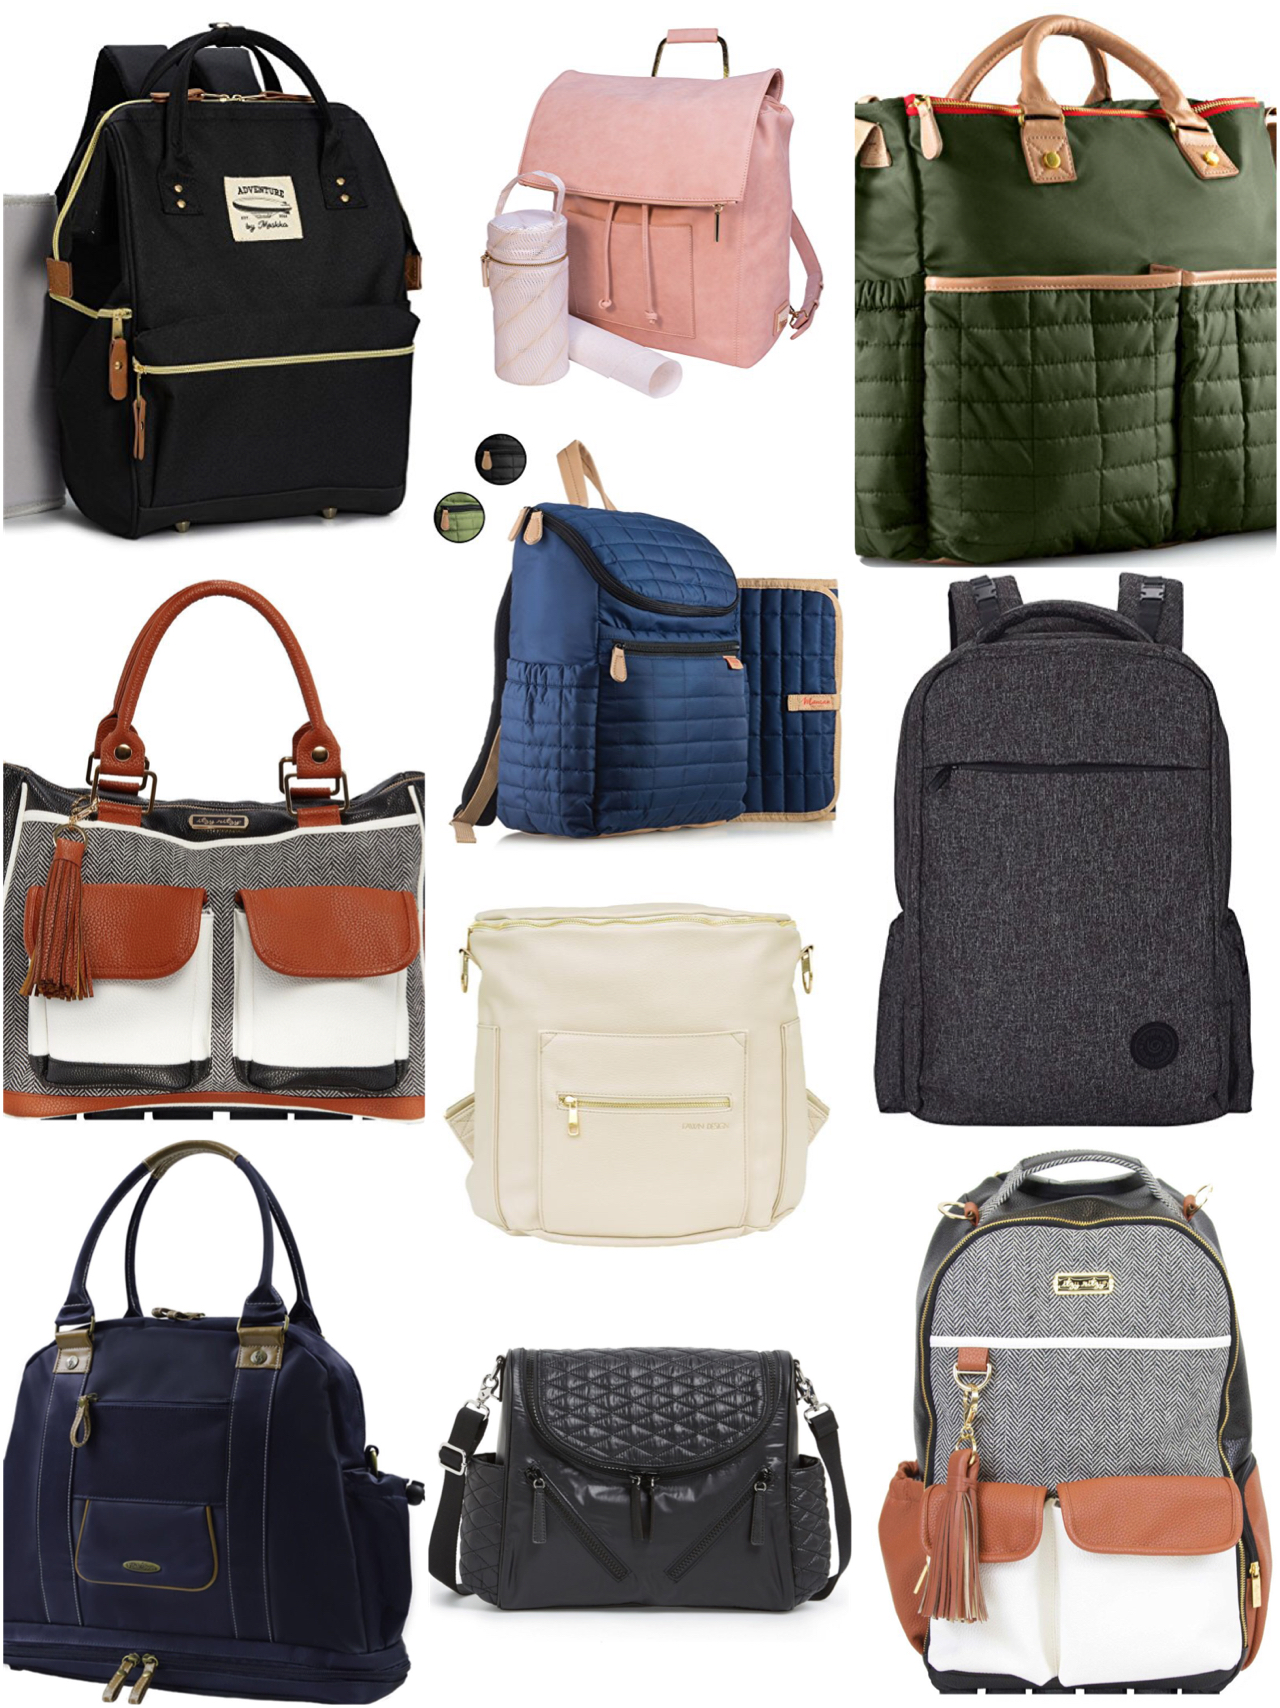 My Favorite Diaper Bags…